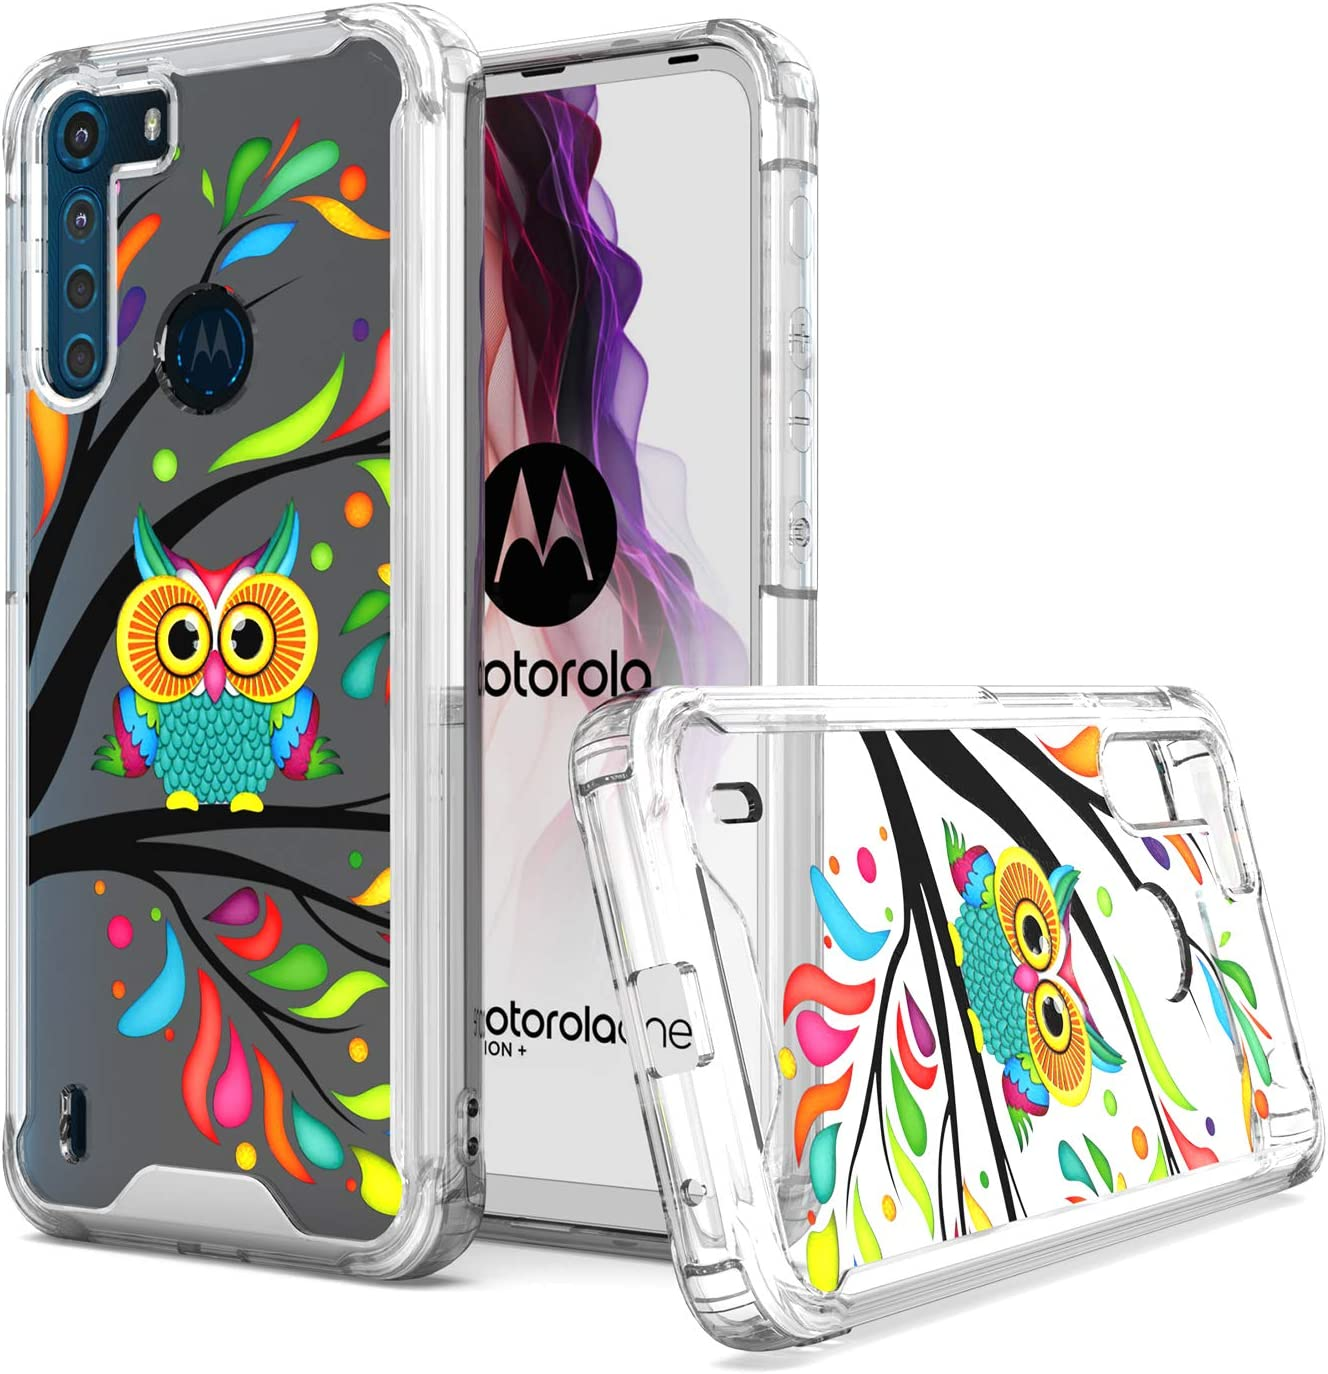 KWEICASE Cell Phone Case for Motorola Moto One Fusion, Moto One Fusion Clear Case with Colorful Cute Owl, Soft TPU Bumper Hard Backing Shockproof Protective Case for Women Girls Men